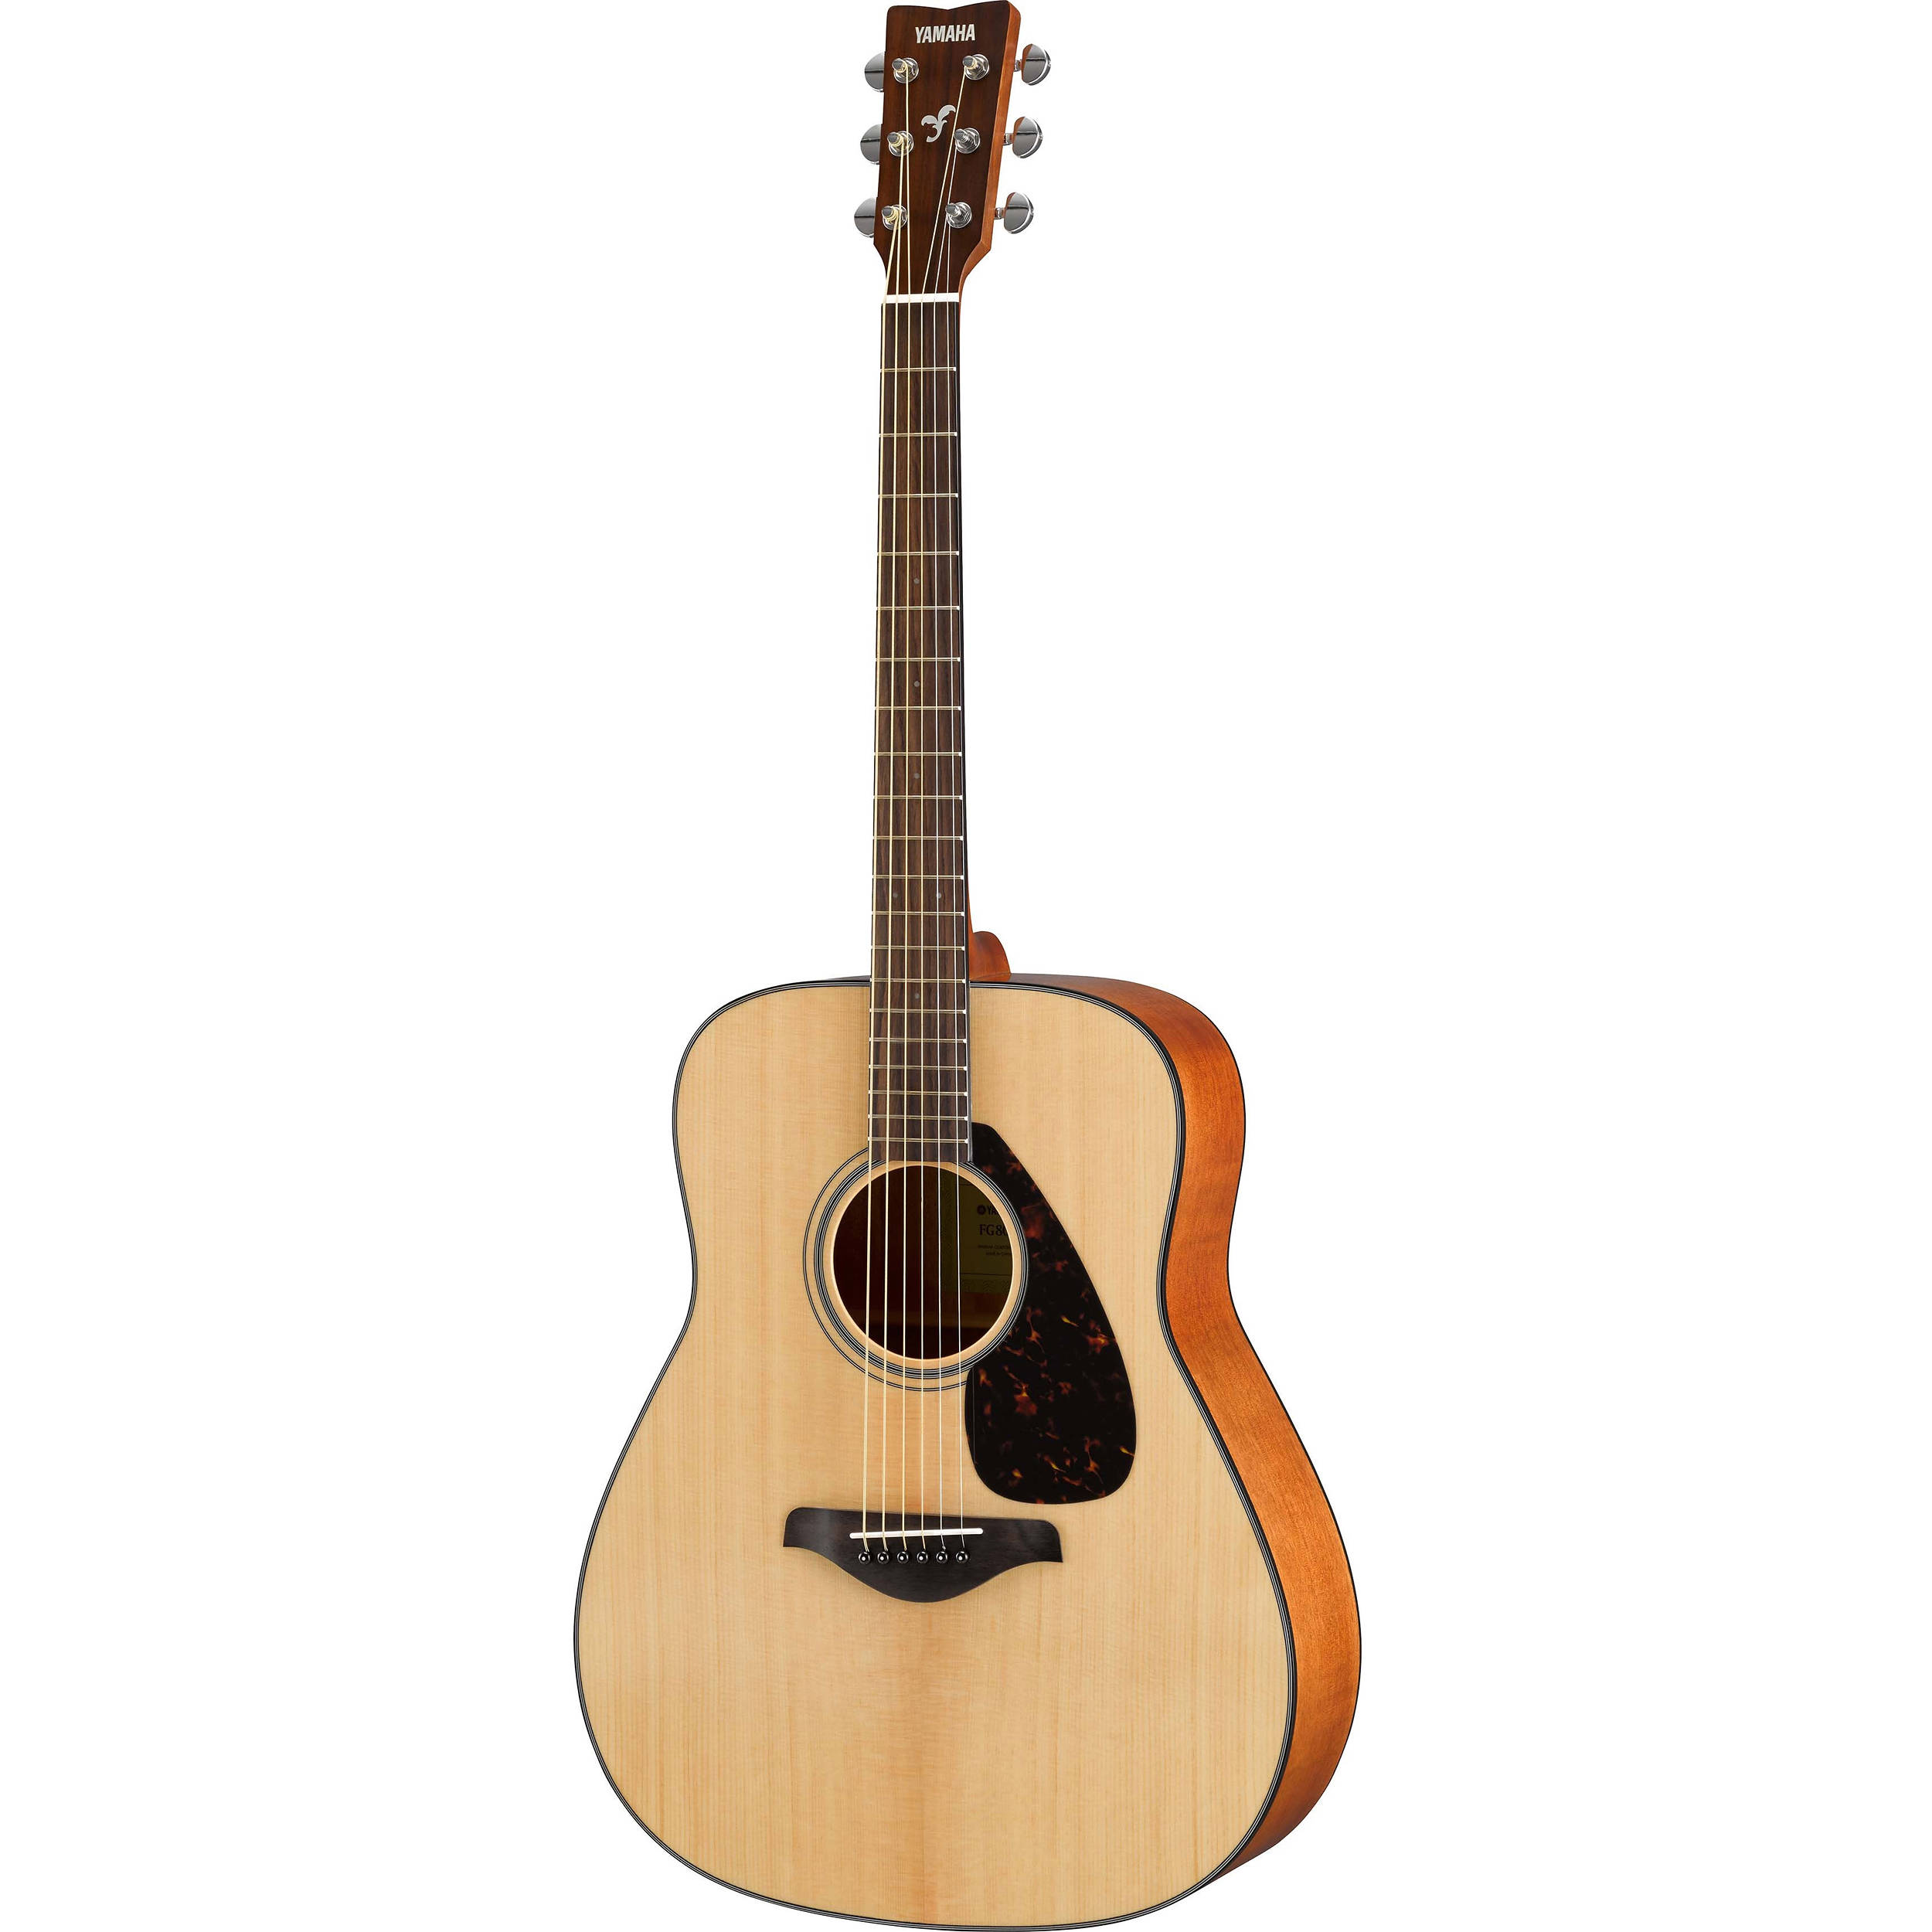 yamaha fg800 fg series dreadnought style acoustic guitar fg800